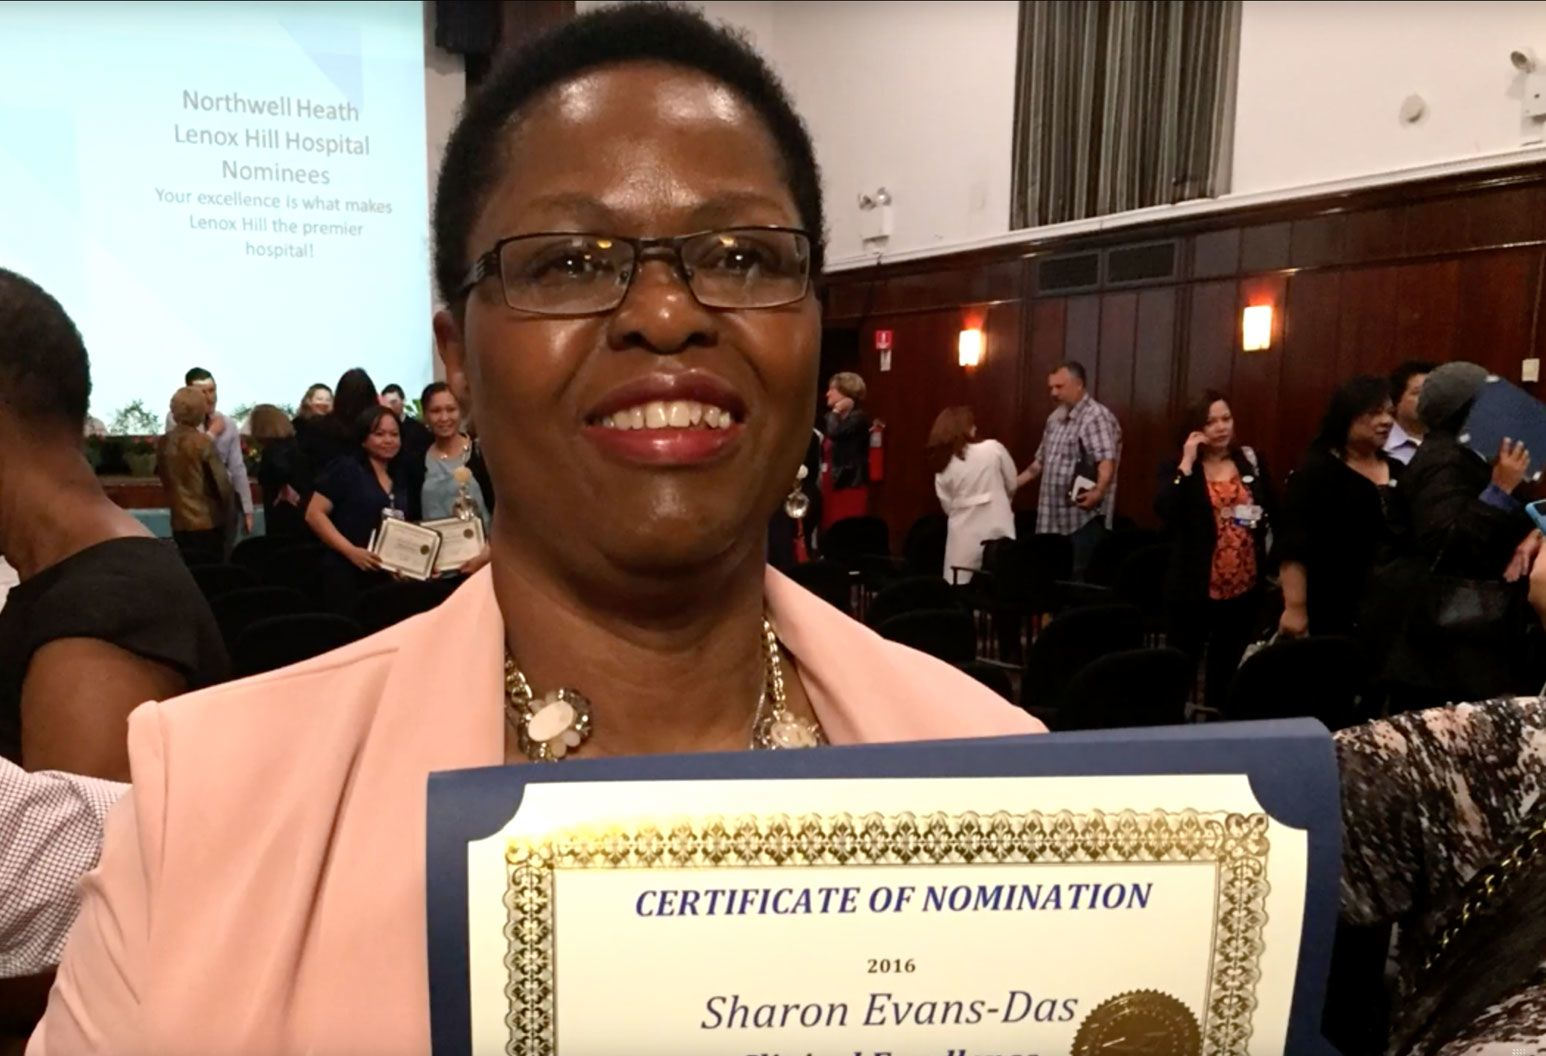 Sharon holding a certificate of nomination at a Northwell event